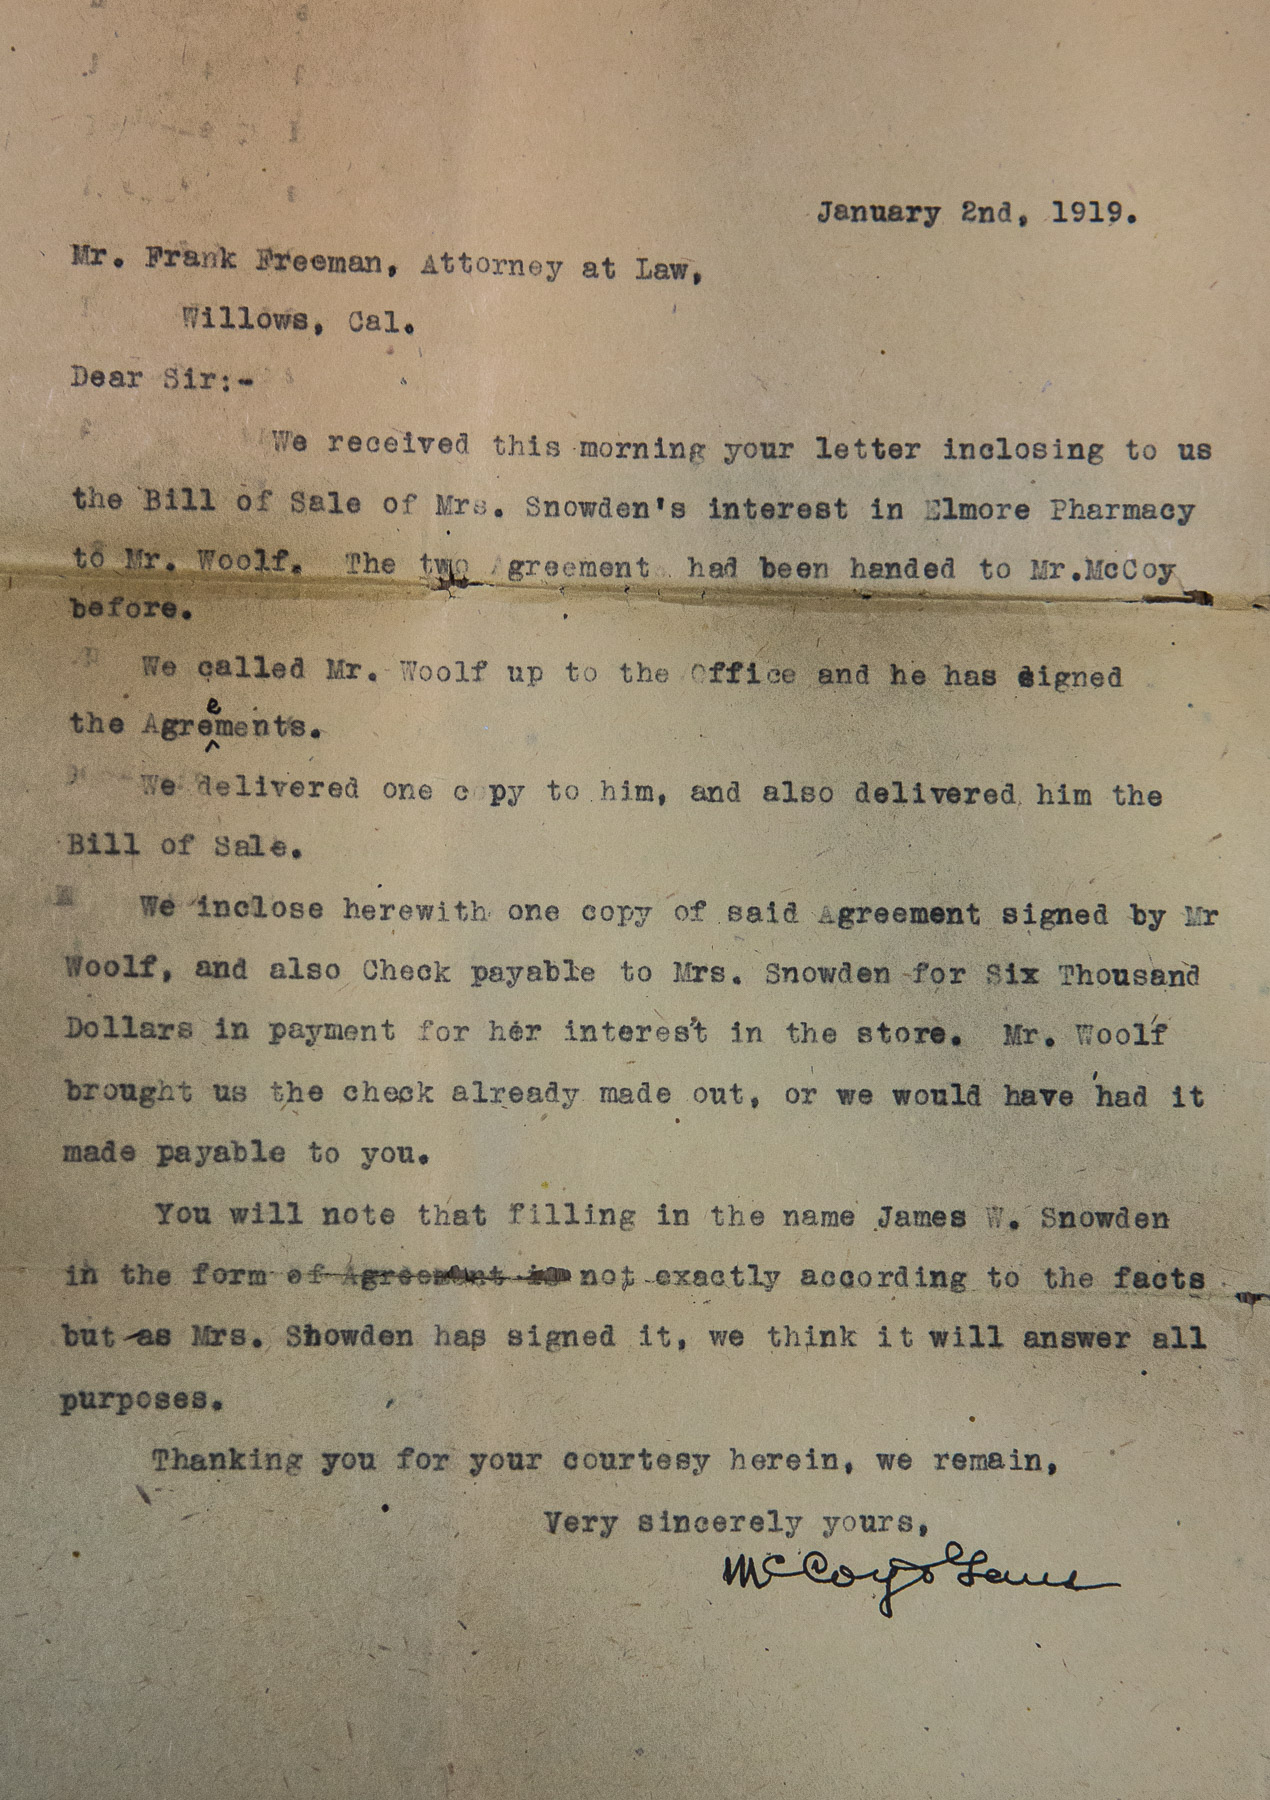 1919 Bill of Sale of Mrs. Snowden's interest in Elmore Pharmacy to Mr. Woolf